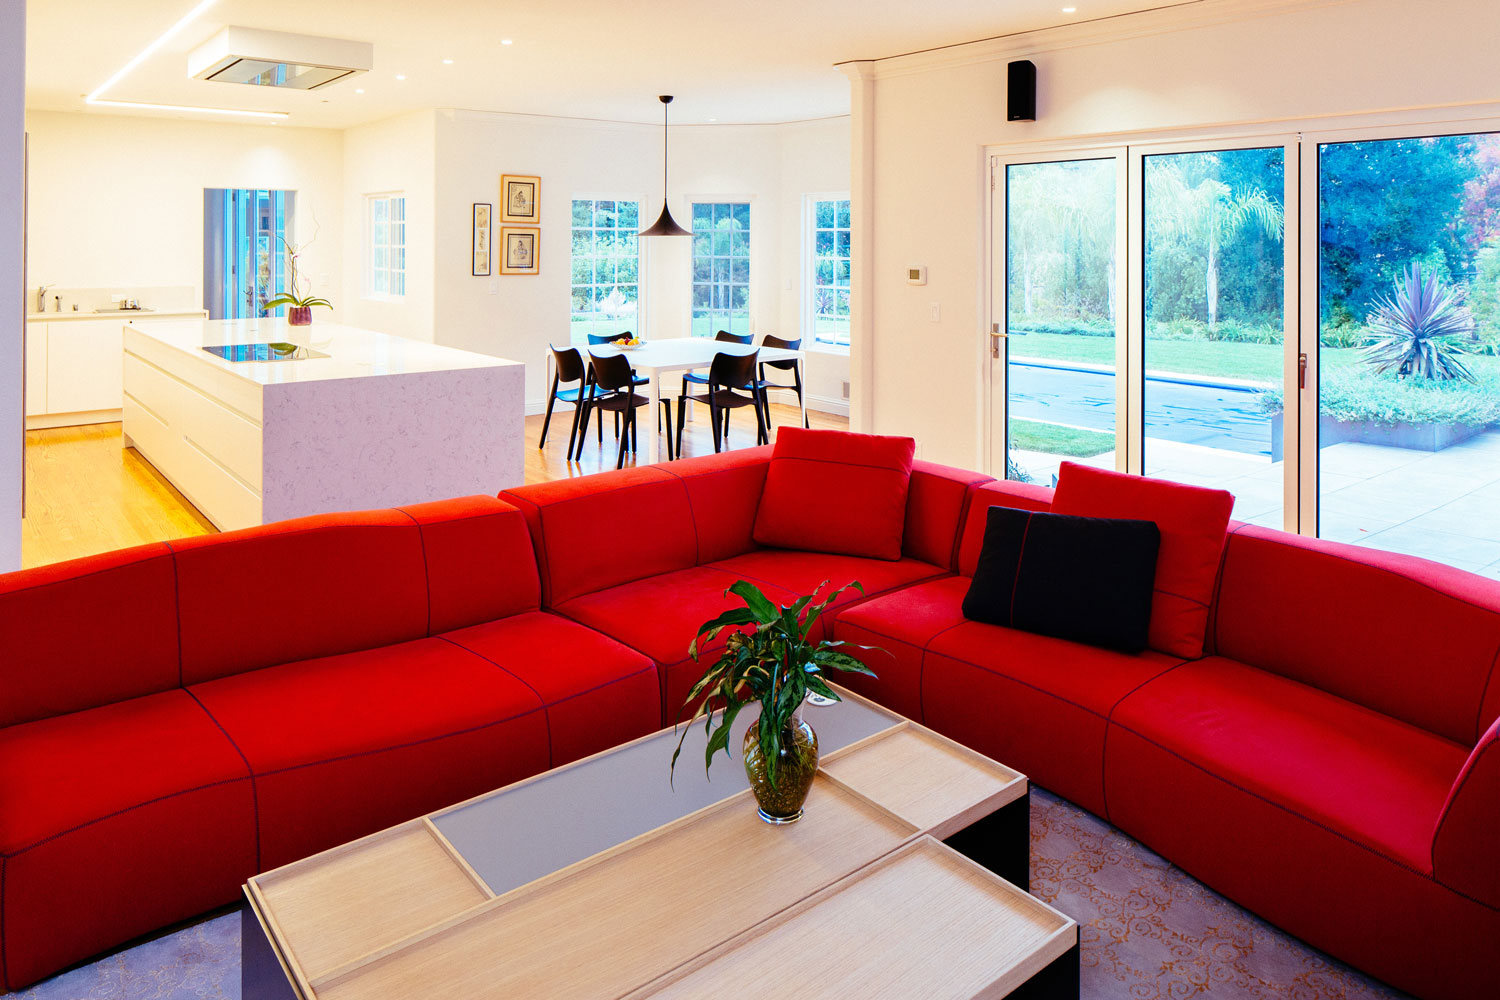 The den features a bright red sectional sofa creating a contrast with the white kitchen.